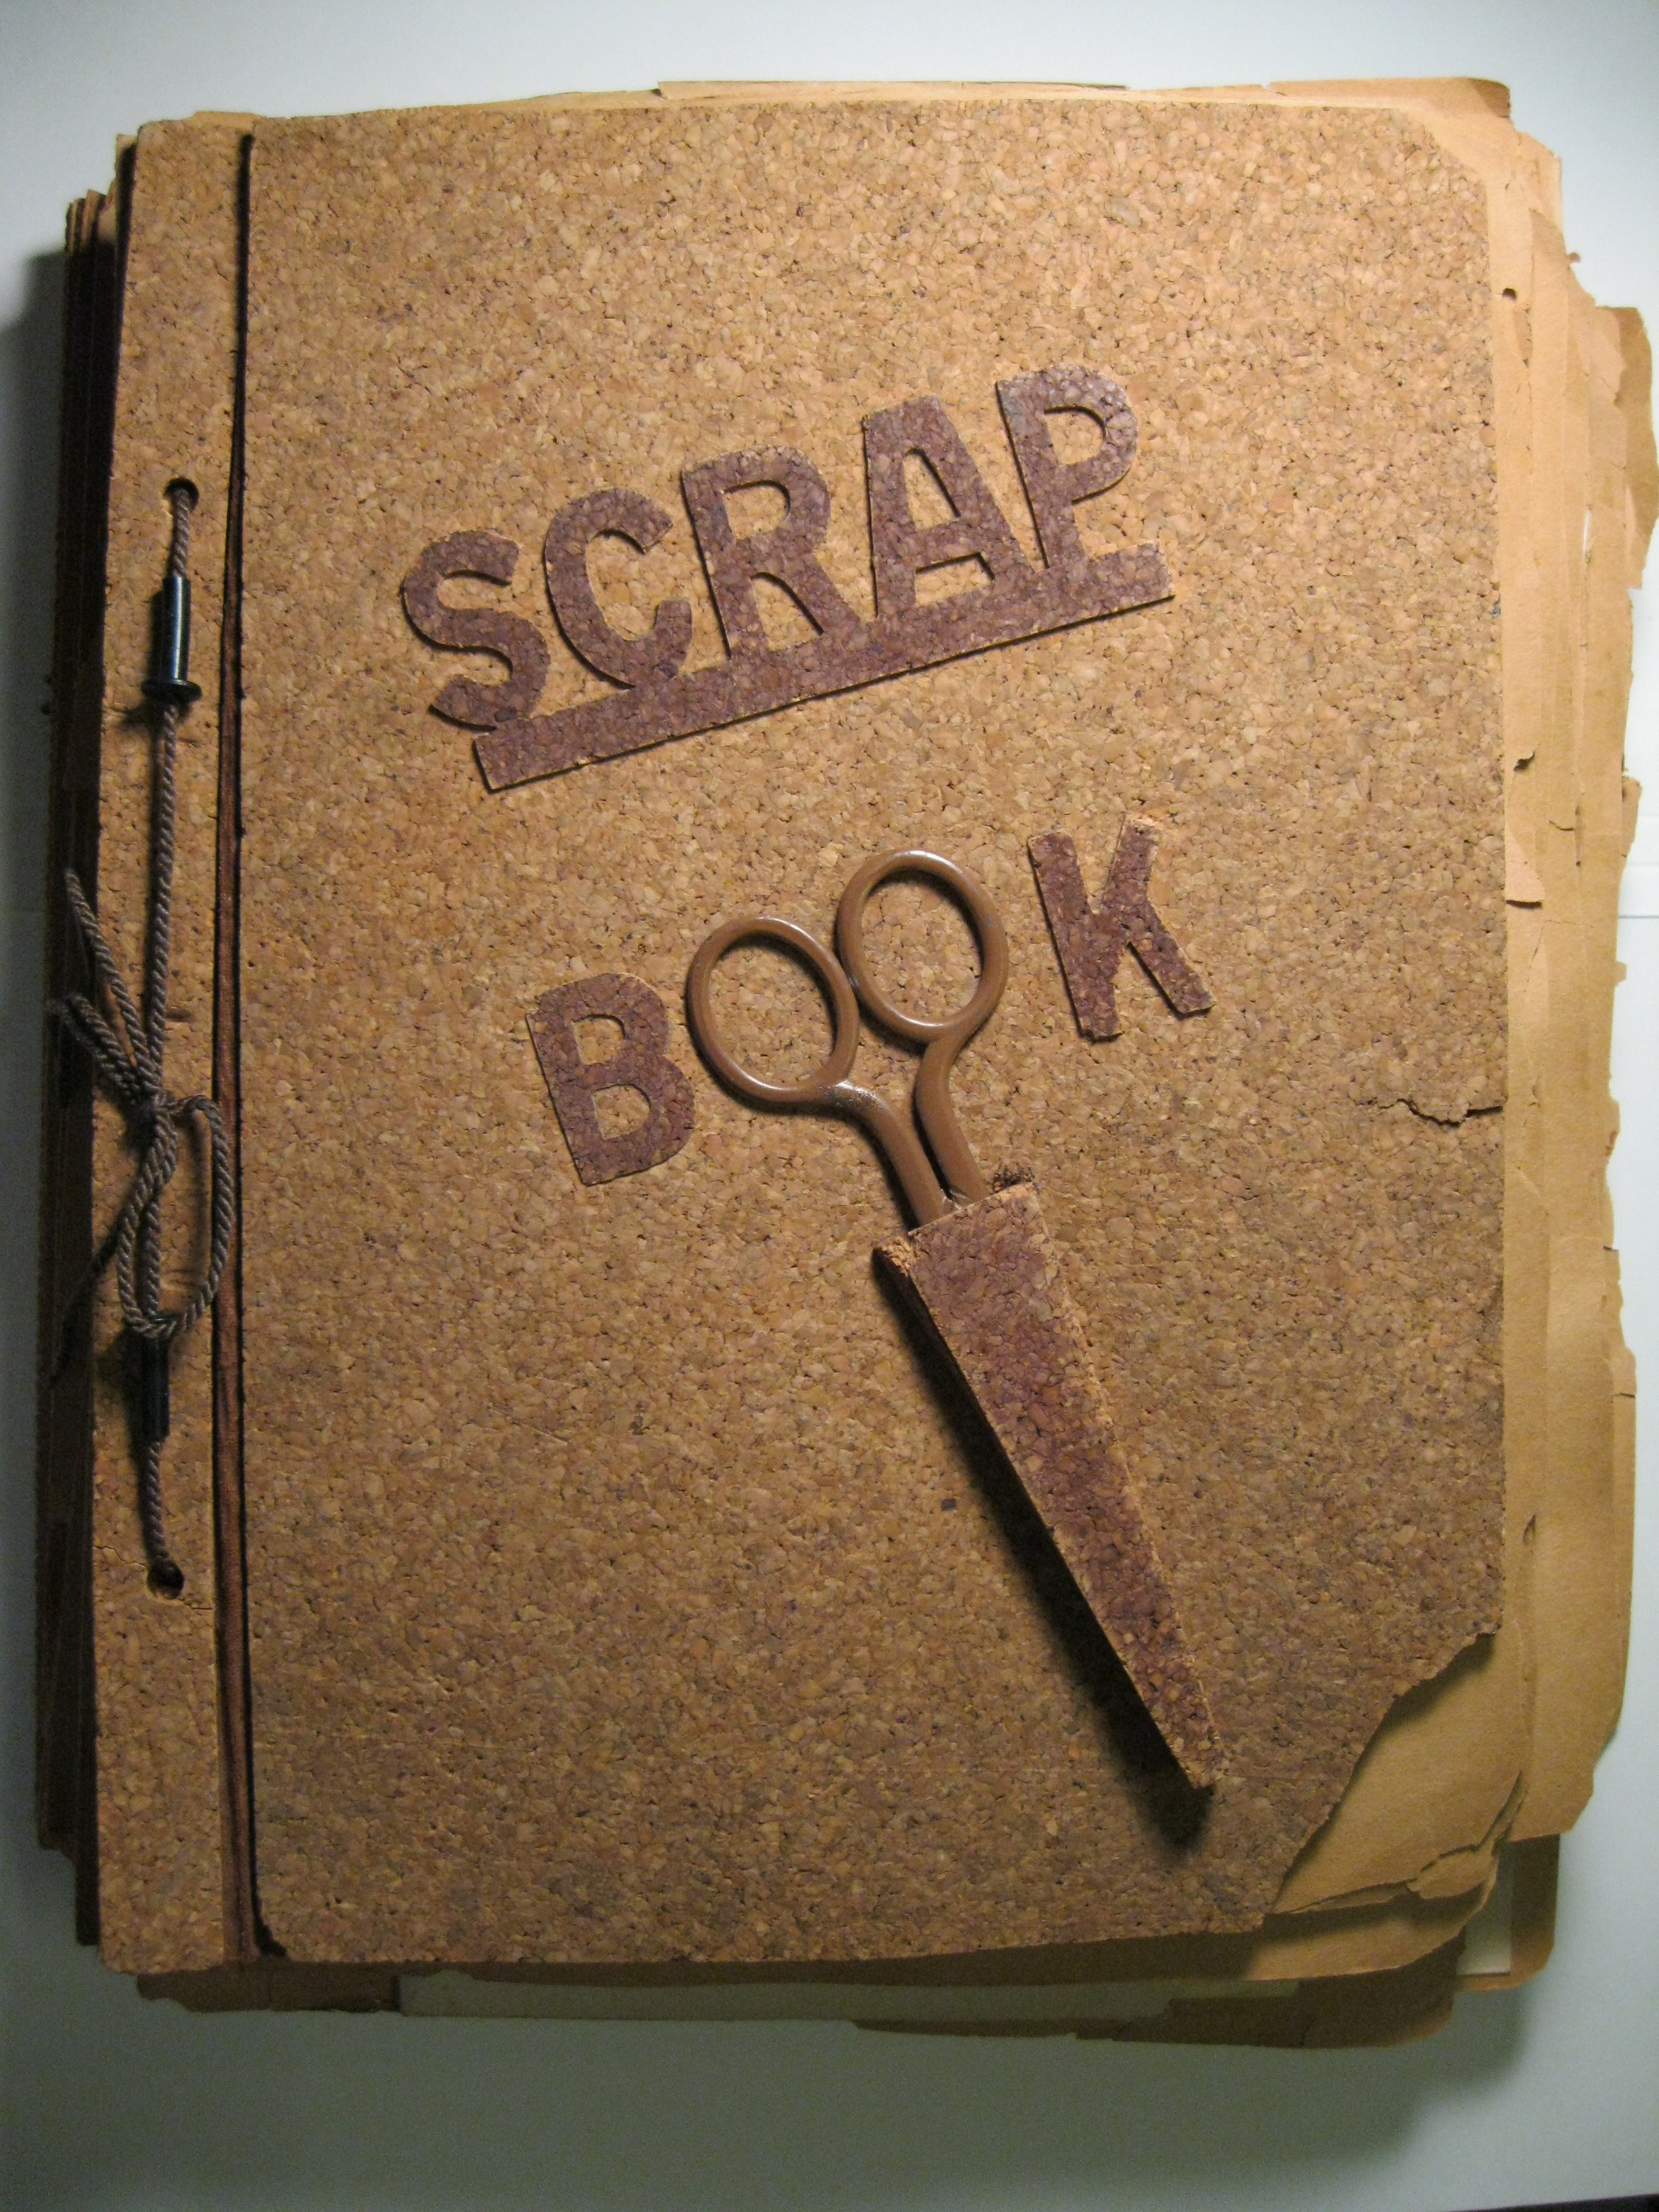 Scrapbook ideas newspaper articles - Senior Scrapbook The Second Best Idea I Ever Stole